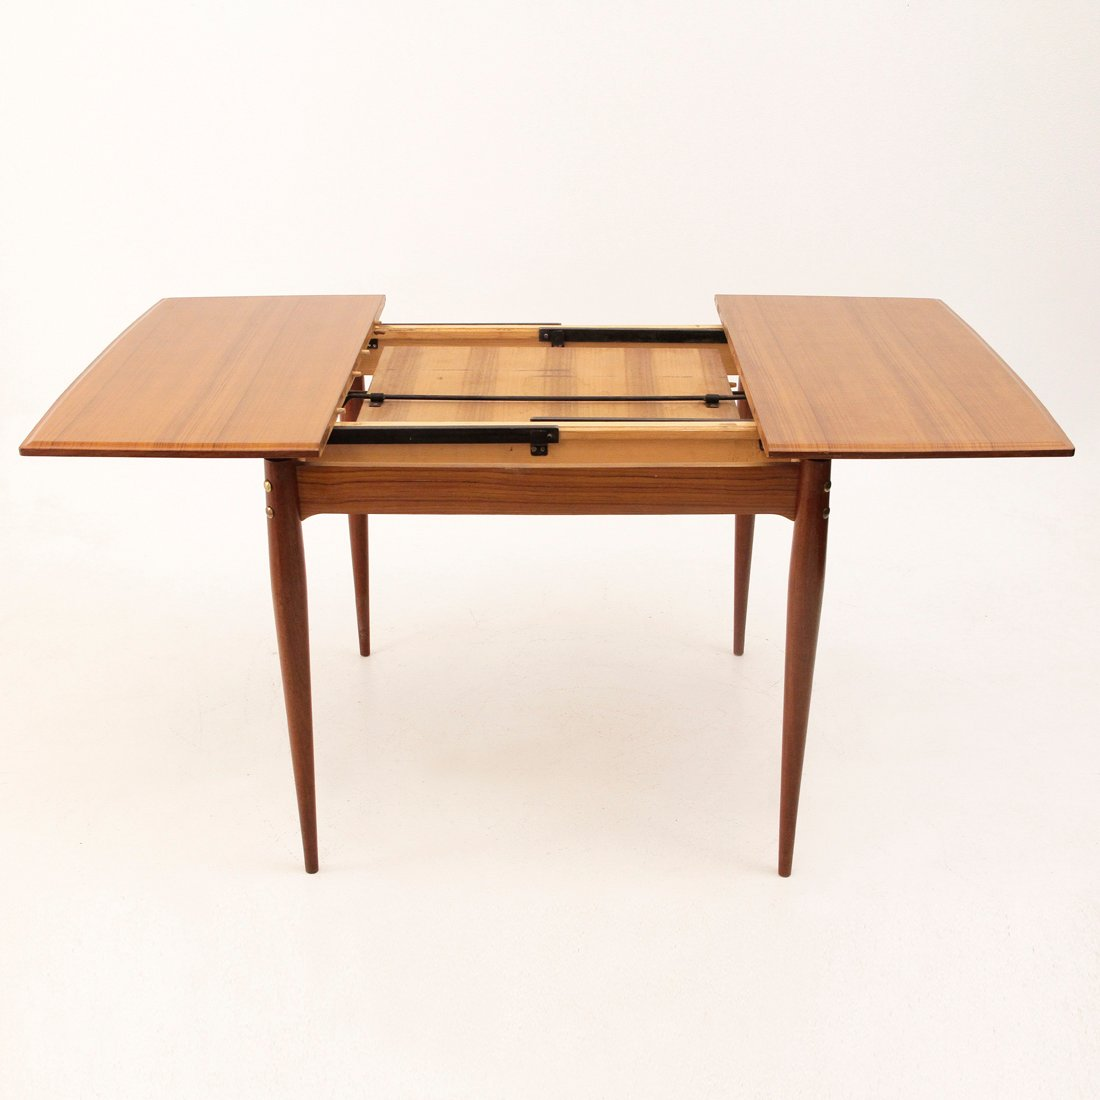 Square extendable italian dining table 1950s for sale at for Italian dining table